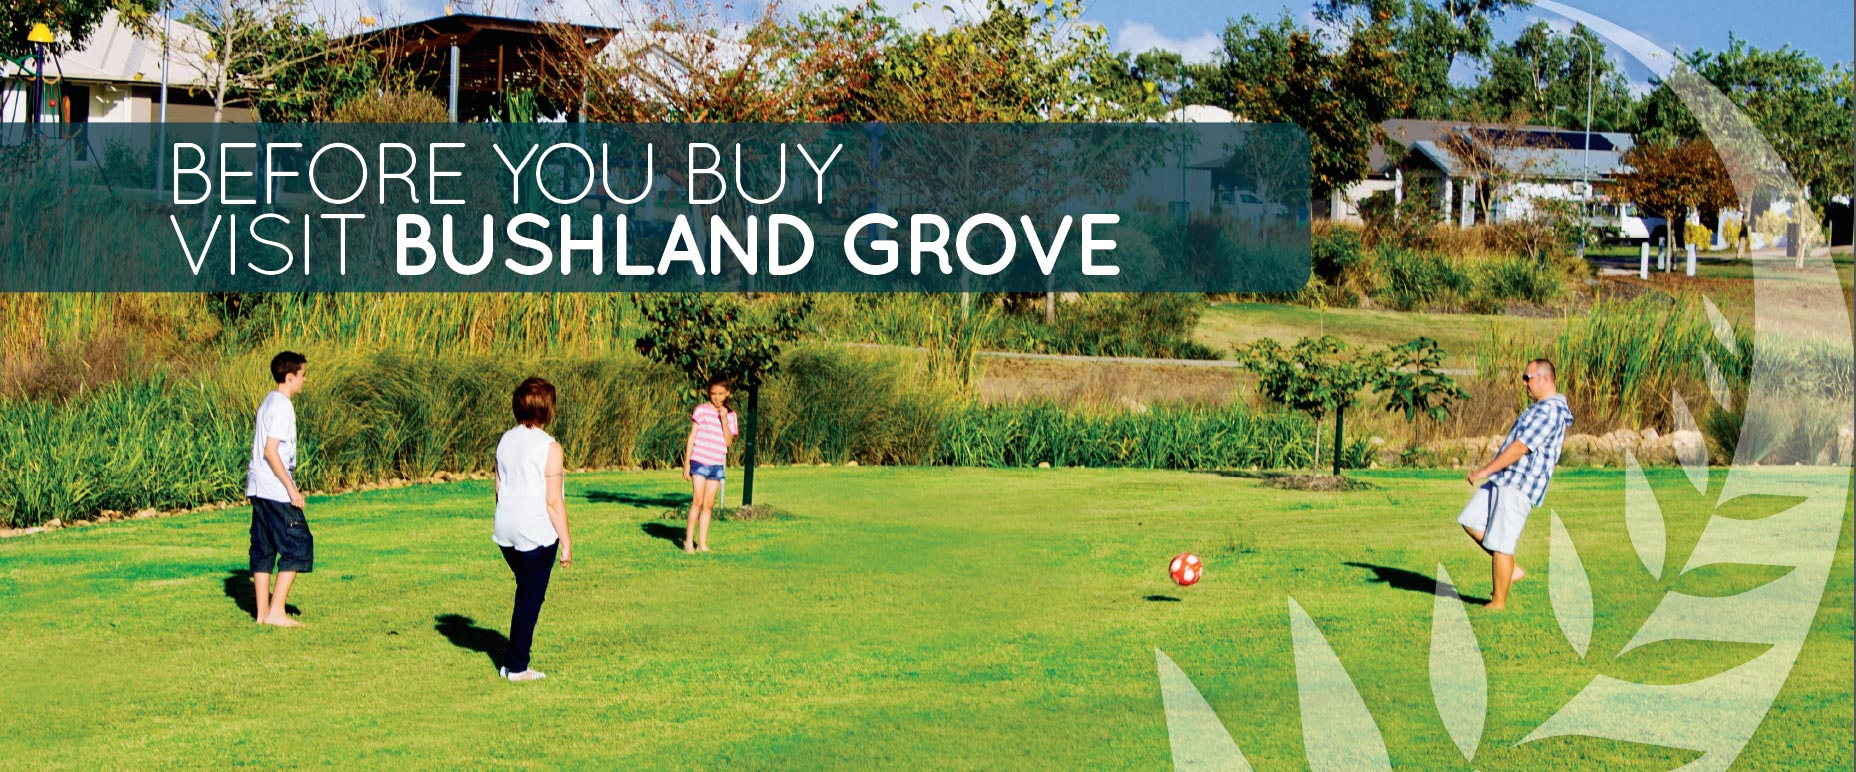 BEFORE-YOU-BUY-VISIT-BUSHLAND-GROVE